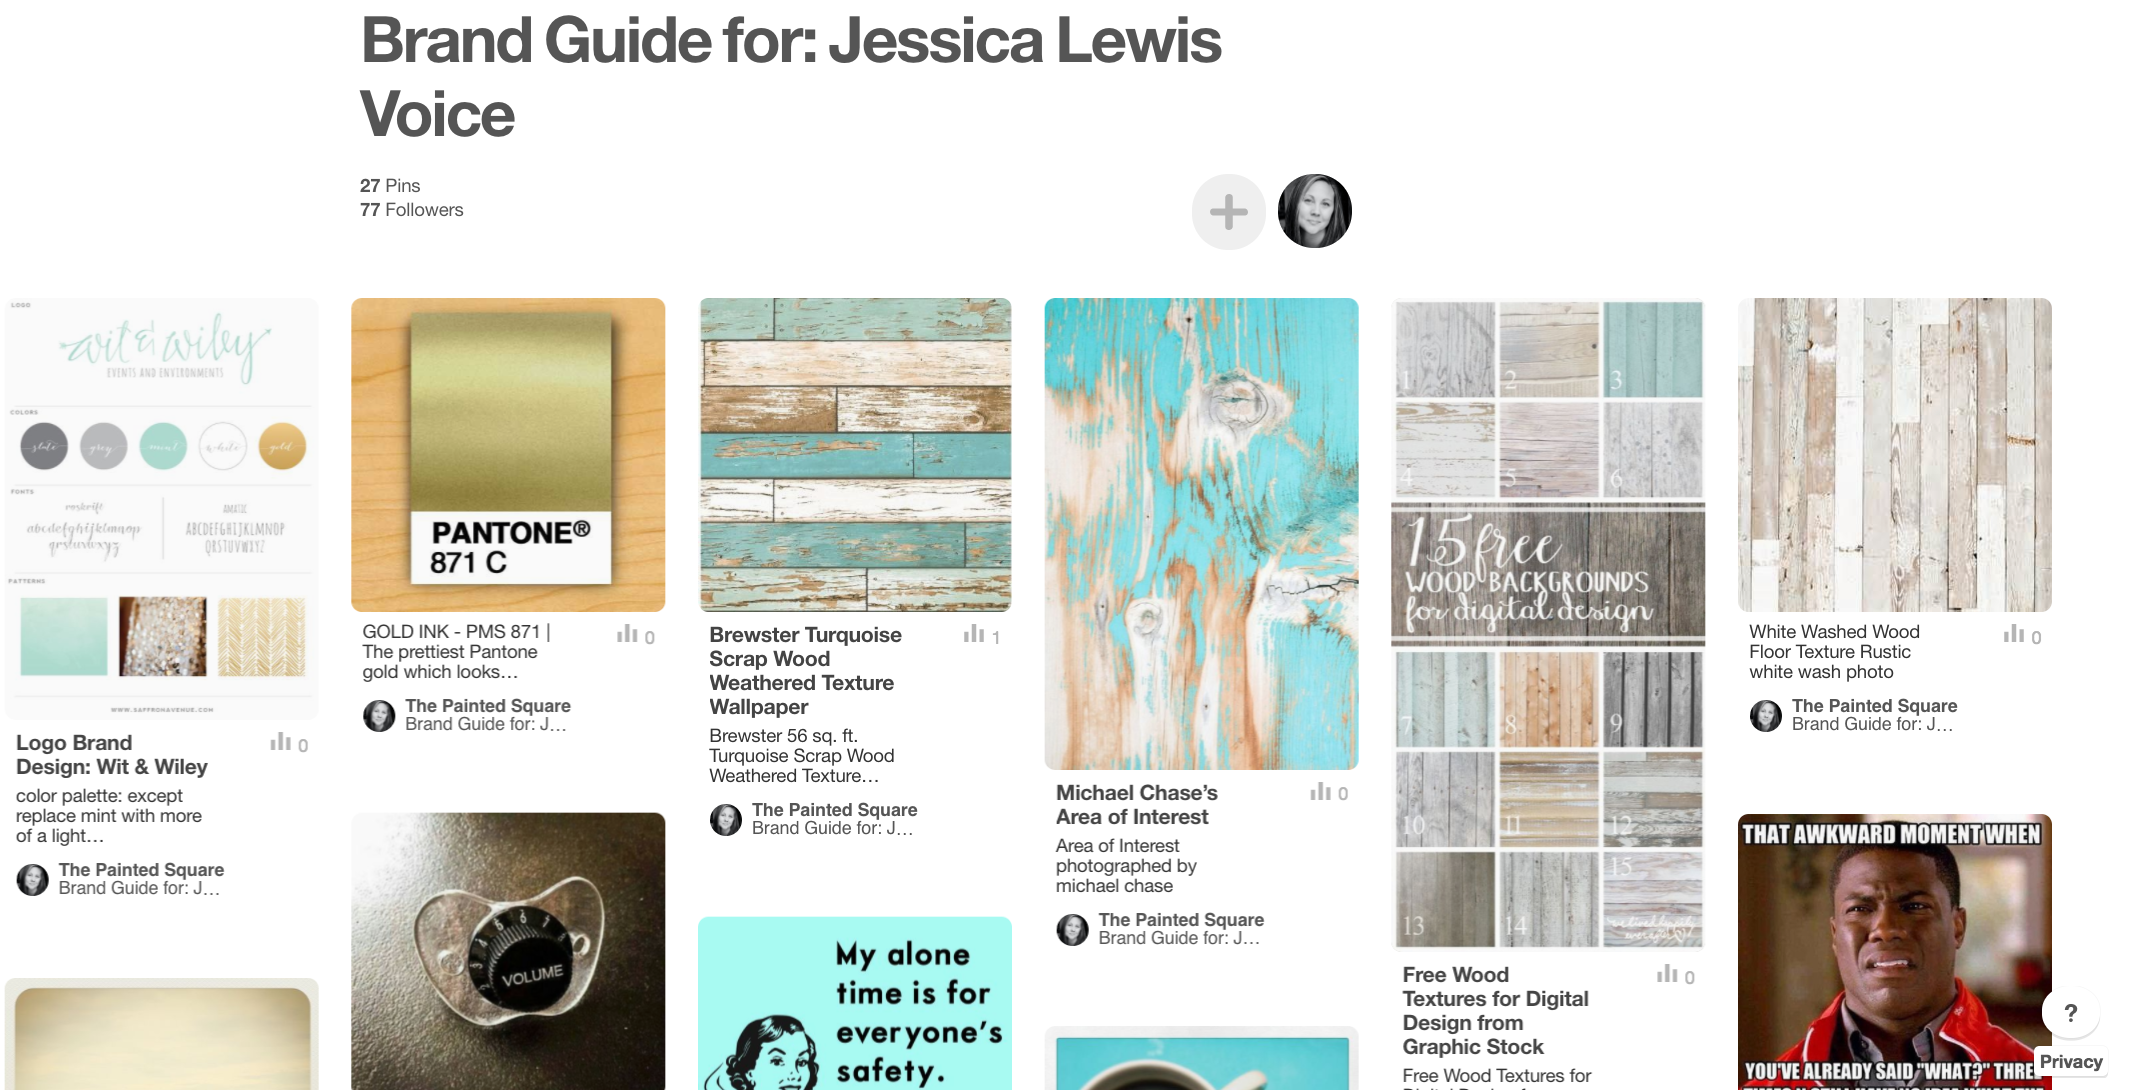 Brand Guide for Jessica Lewis Voice